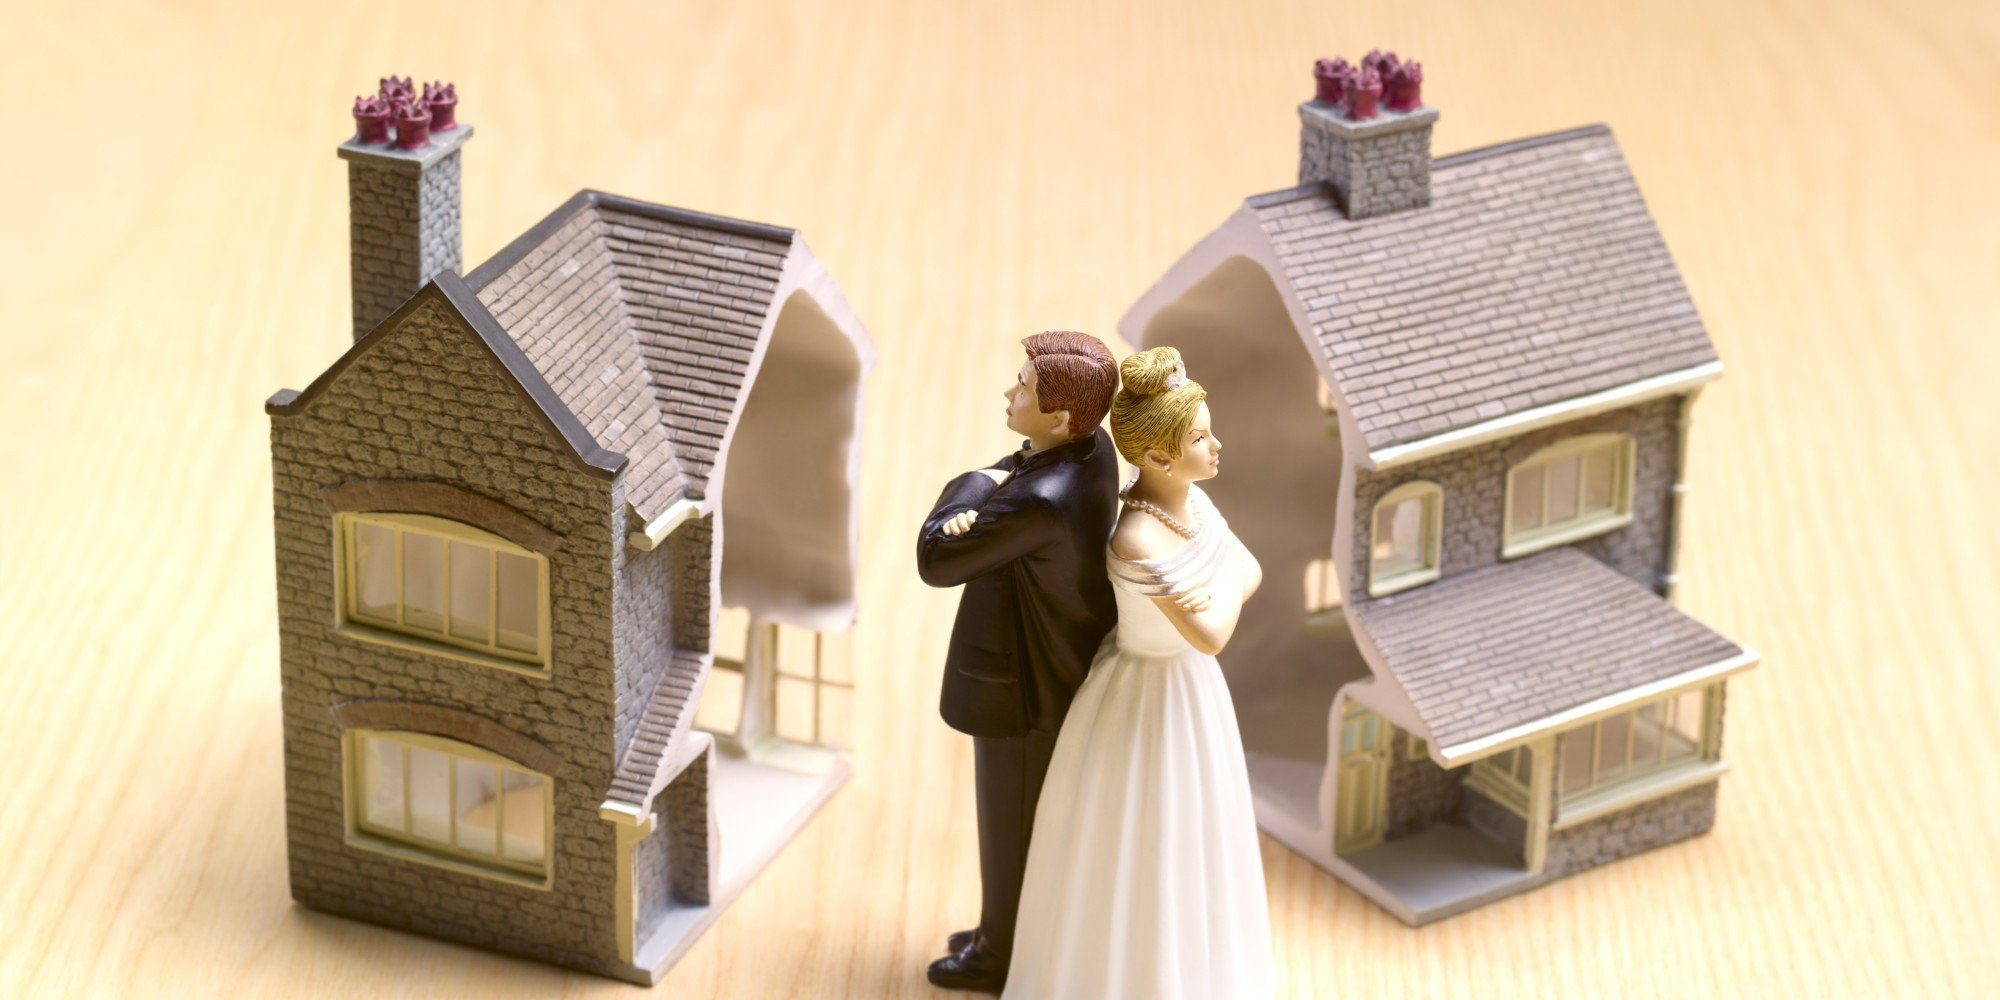 Separating From a Spouse? 5 Things You Need to Know About the Matrimonial Home